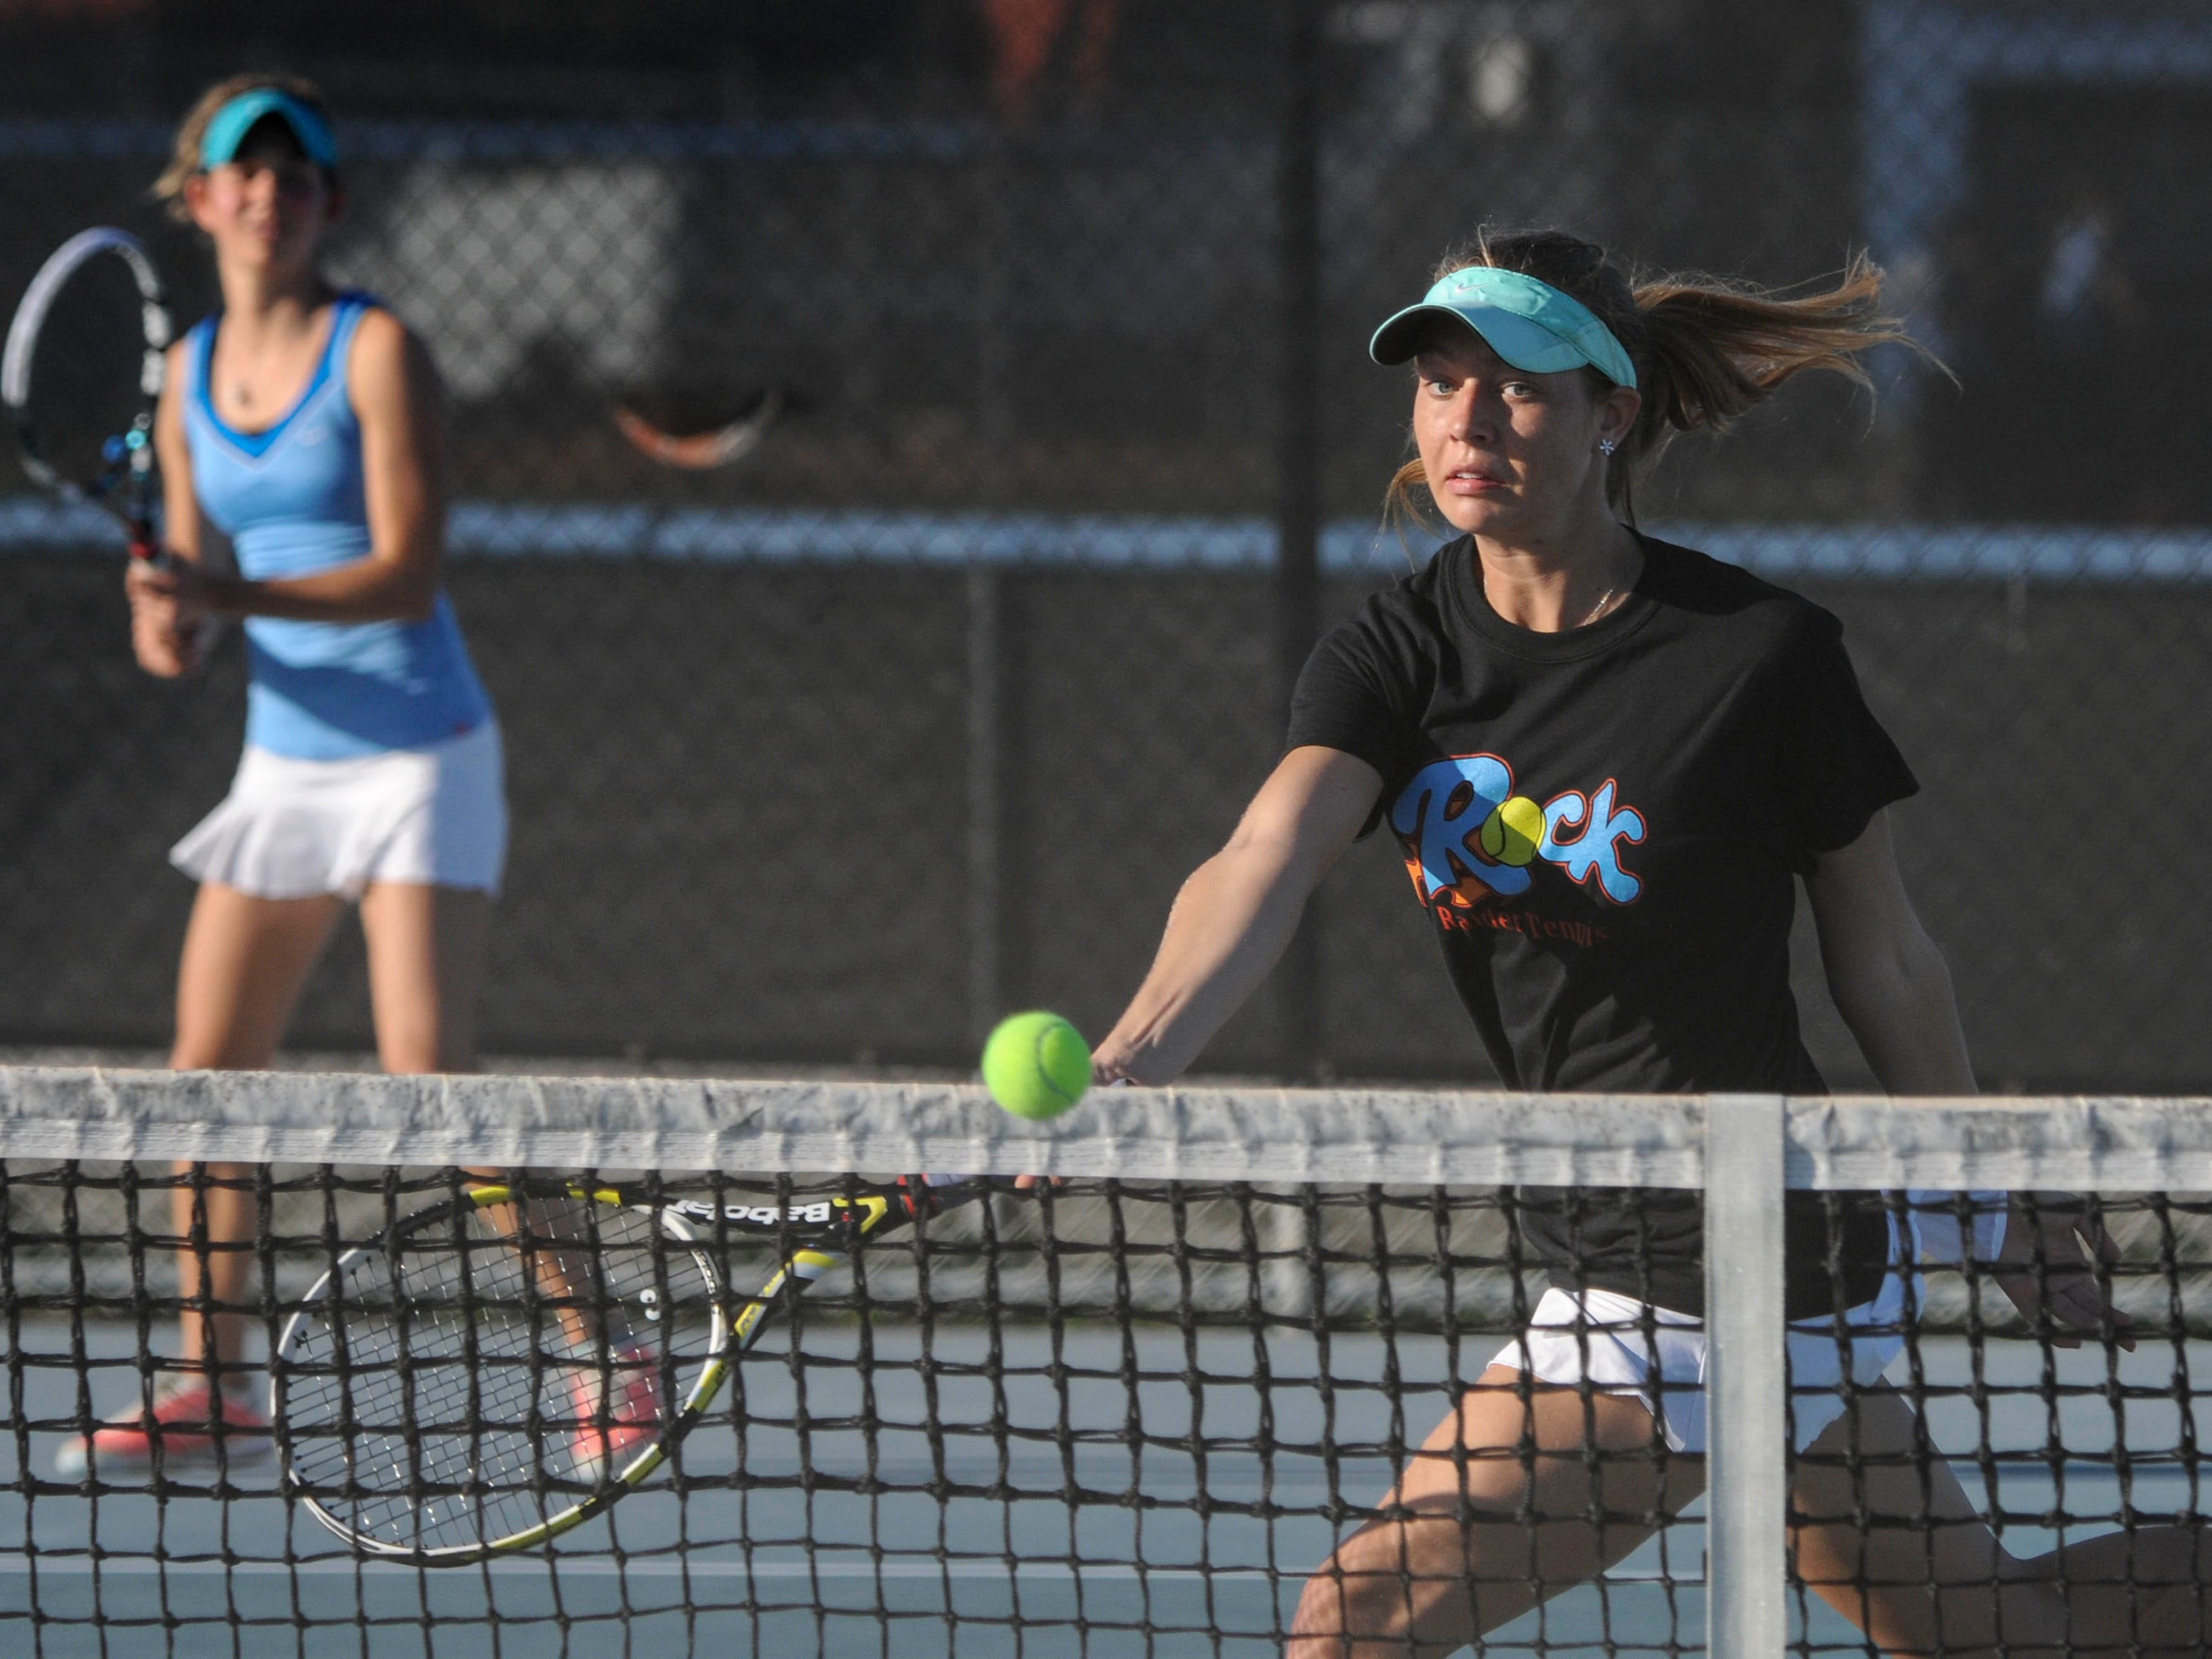 Emily Sidor watches as her sister Katie sends a drop shot over the net during a doubles match this season.